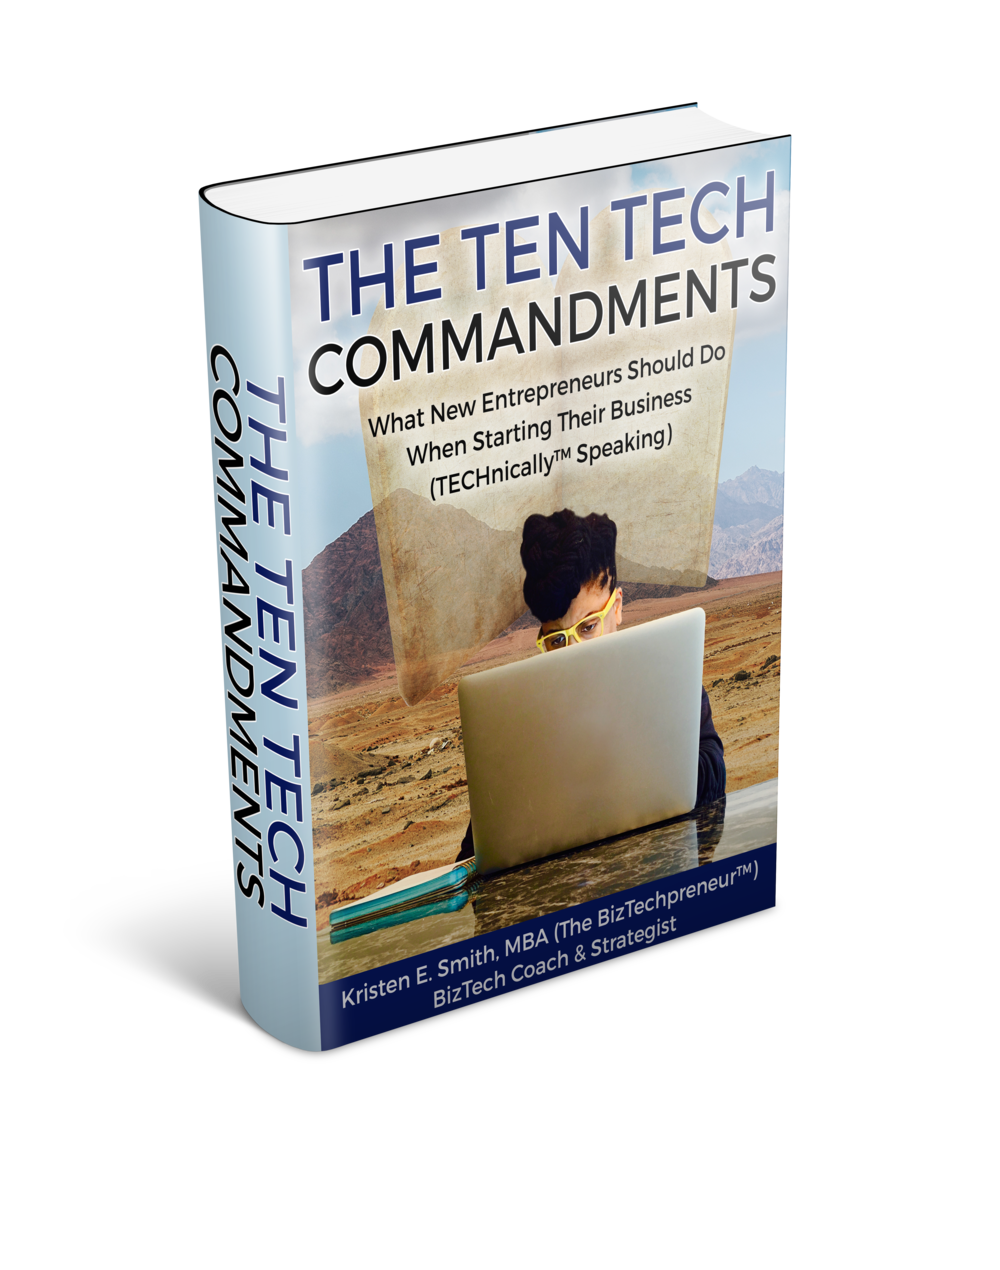 The Ten Tech Commandments™: Your personal guide to showing you the power of leveraging technology into your business from day one.